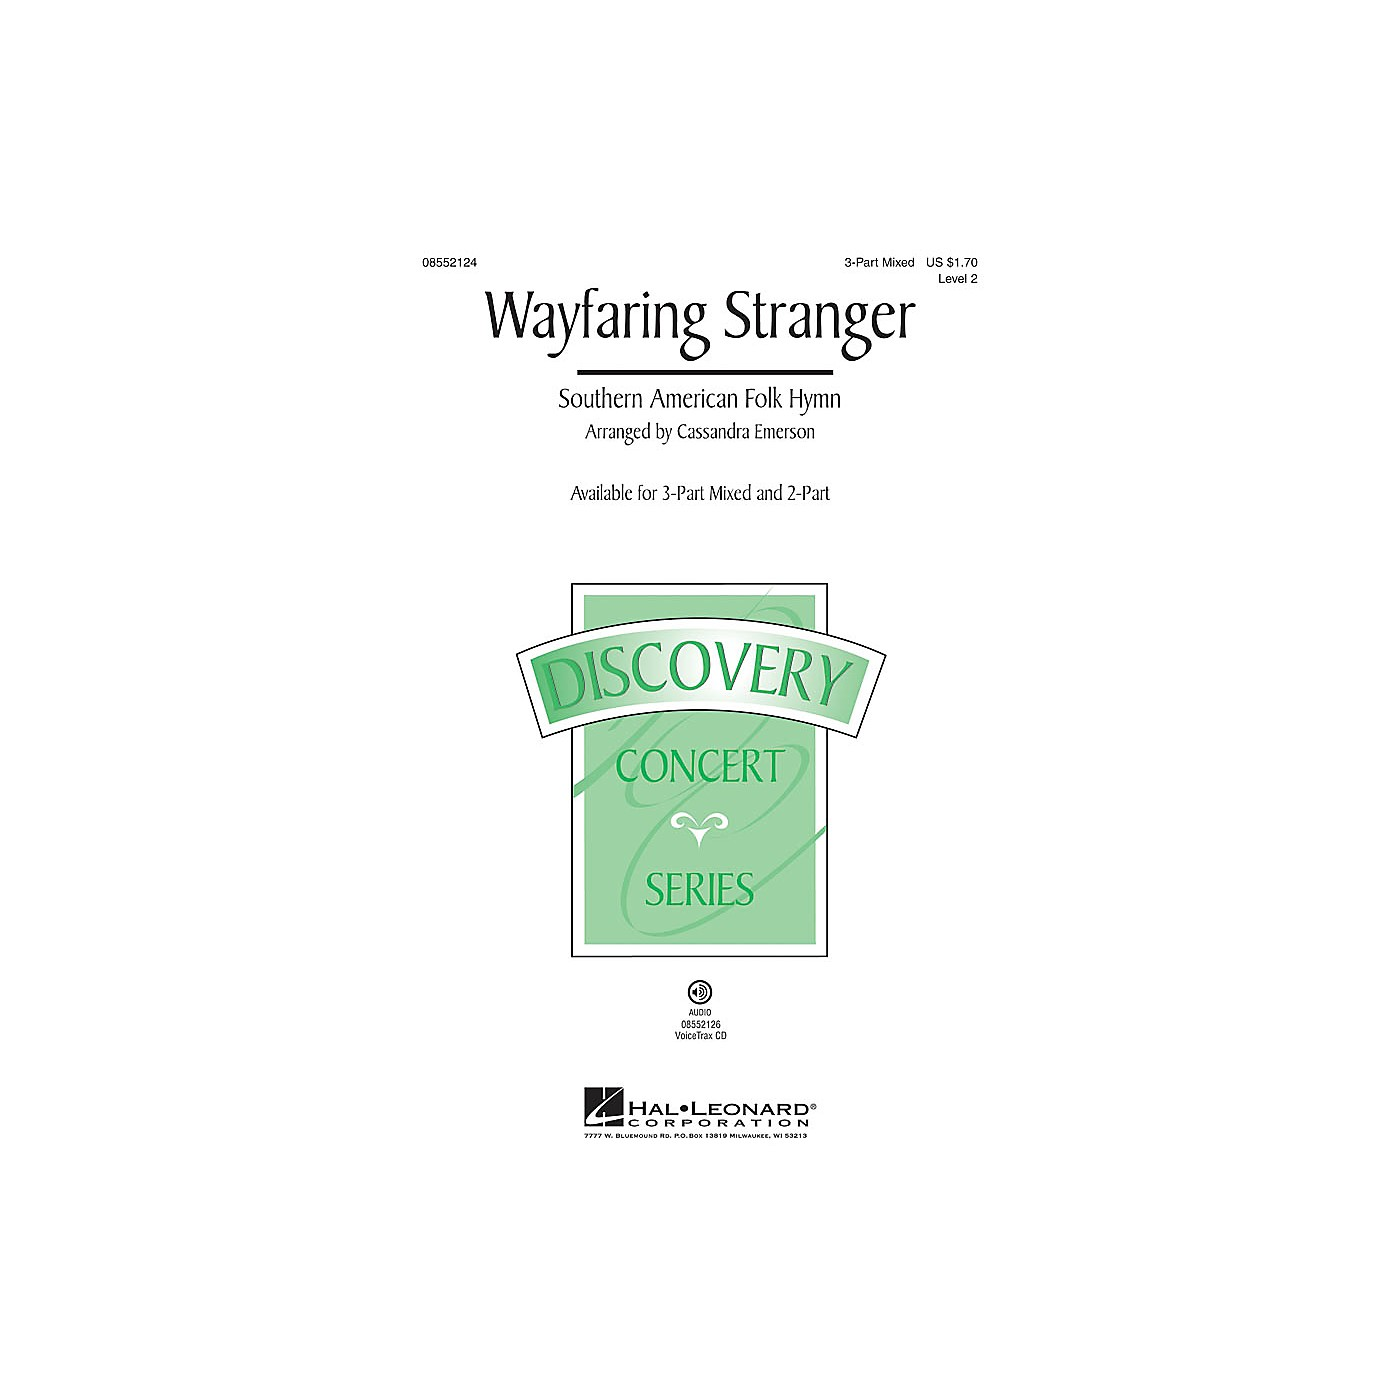 Hal Leonard Wayfaring Stranger (Discovery Level 2) 2-Part Arranged by Cassandra Emerson thumbnail